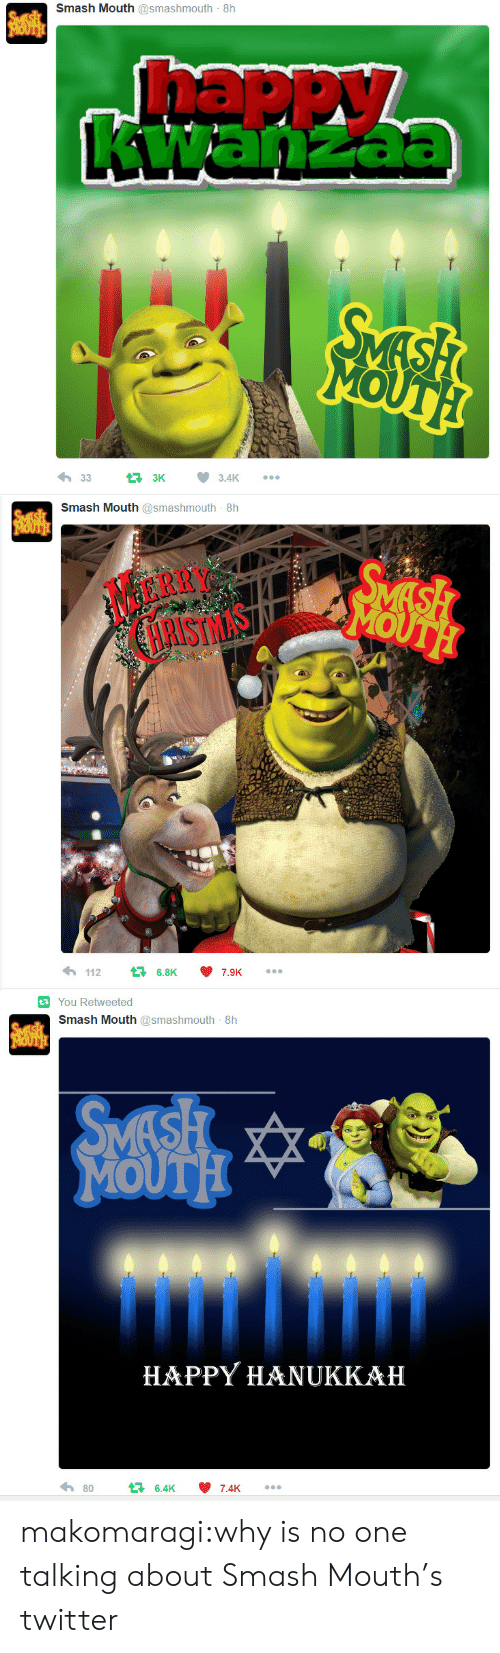 happy hanukkah: Smash Mouth @smashmouth 8h  SVESH  MOUTH!  Thappy  awanzac  SMASH  MOUTH  3.4K  3K  33   Smash Mouth @smashmouth 8h  SMESH  MOUTH  SMASH  MOUTH  MERRY  HRISTMAS  112  16.8K  7.9K   You Retweeted  Smash Mouth @smashmouth 8h  SMESH  MOUTH  SMASH  MOUTH  HAPPY HANUKKAH  80  46.4K  7.4K makomaragi:why is no one talking about Smash Mouth's twitter